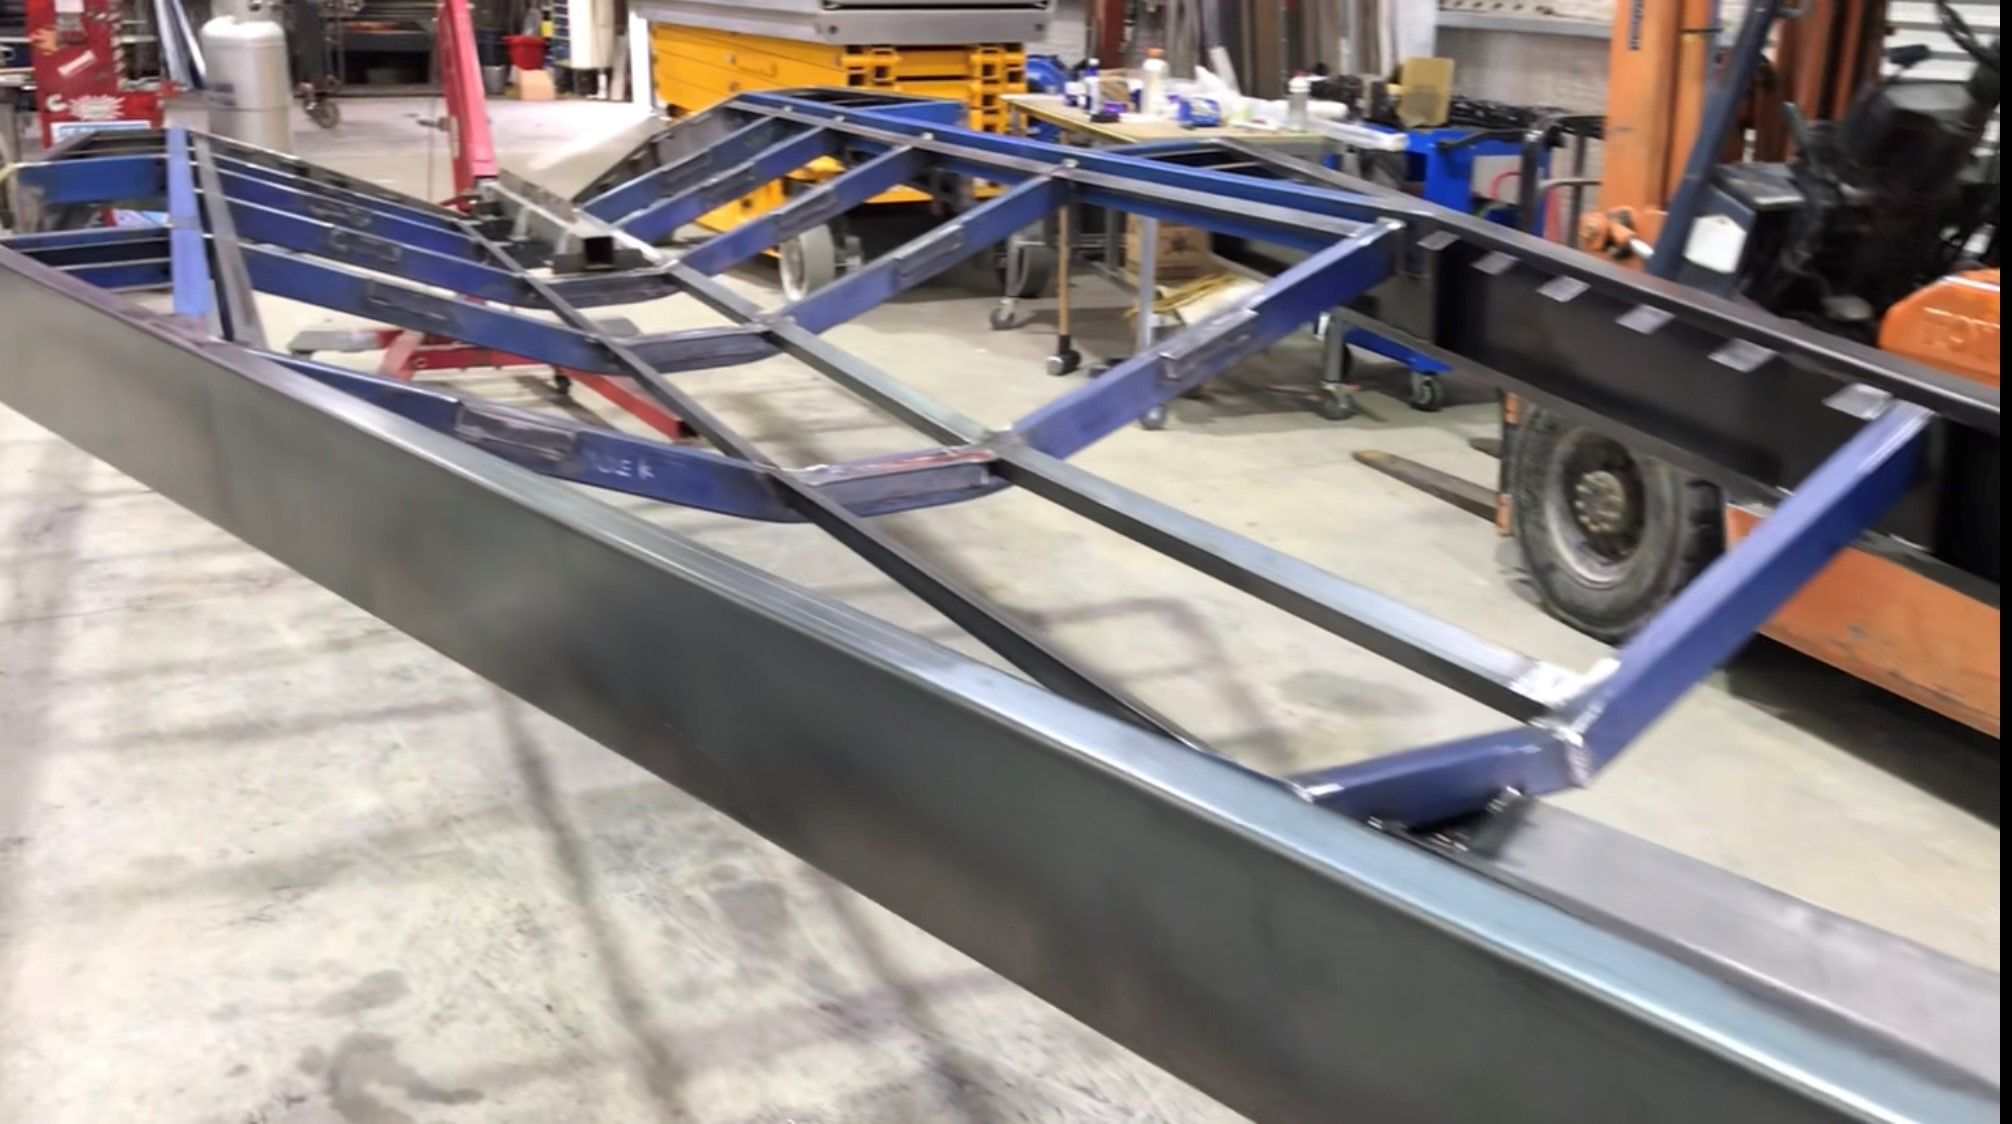 Check out our latest Force Custom Trailer! This F23 trailer is getting ready for galvanising. All built out of heavy duty, Australian Steel, Pre-Drilled before galvanising.